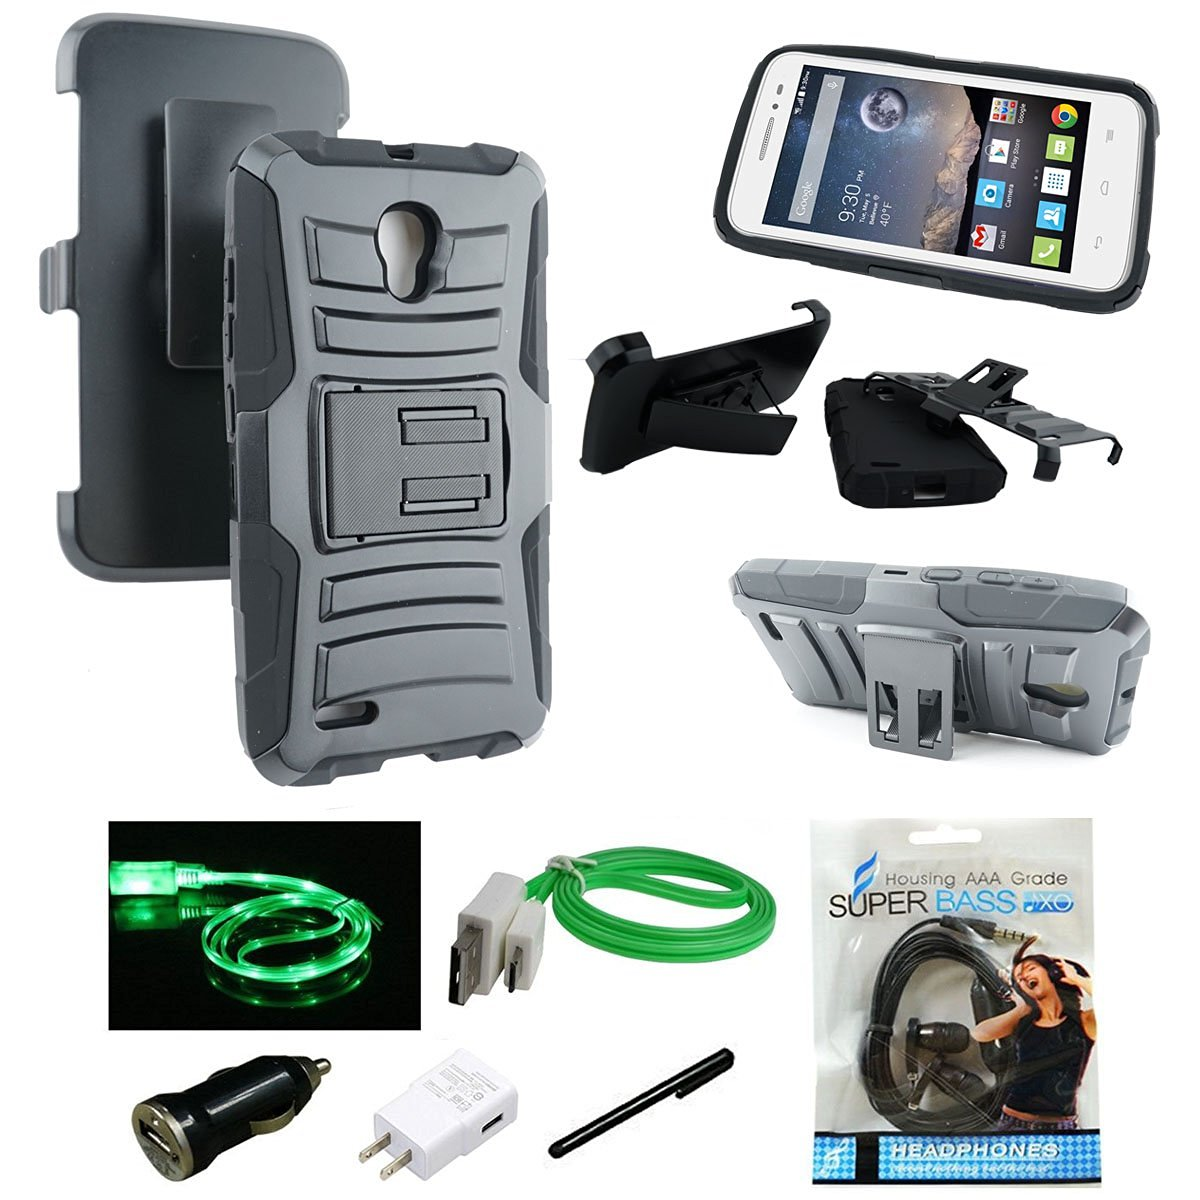 One Touch Pop Icon 2 LTE Case, Mstechcorp - Alcatel One Touch Pop Icon 2 LTE A846L Heavy Duty Hybrid Armor Dual Layer Kickstand Belt Clip Holster Rugged Case - Includes Accessories (Holster Black)